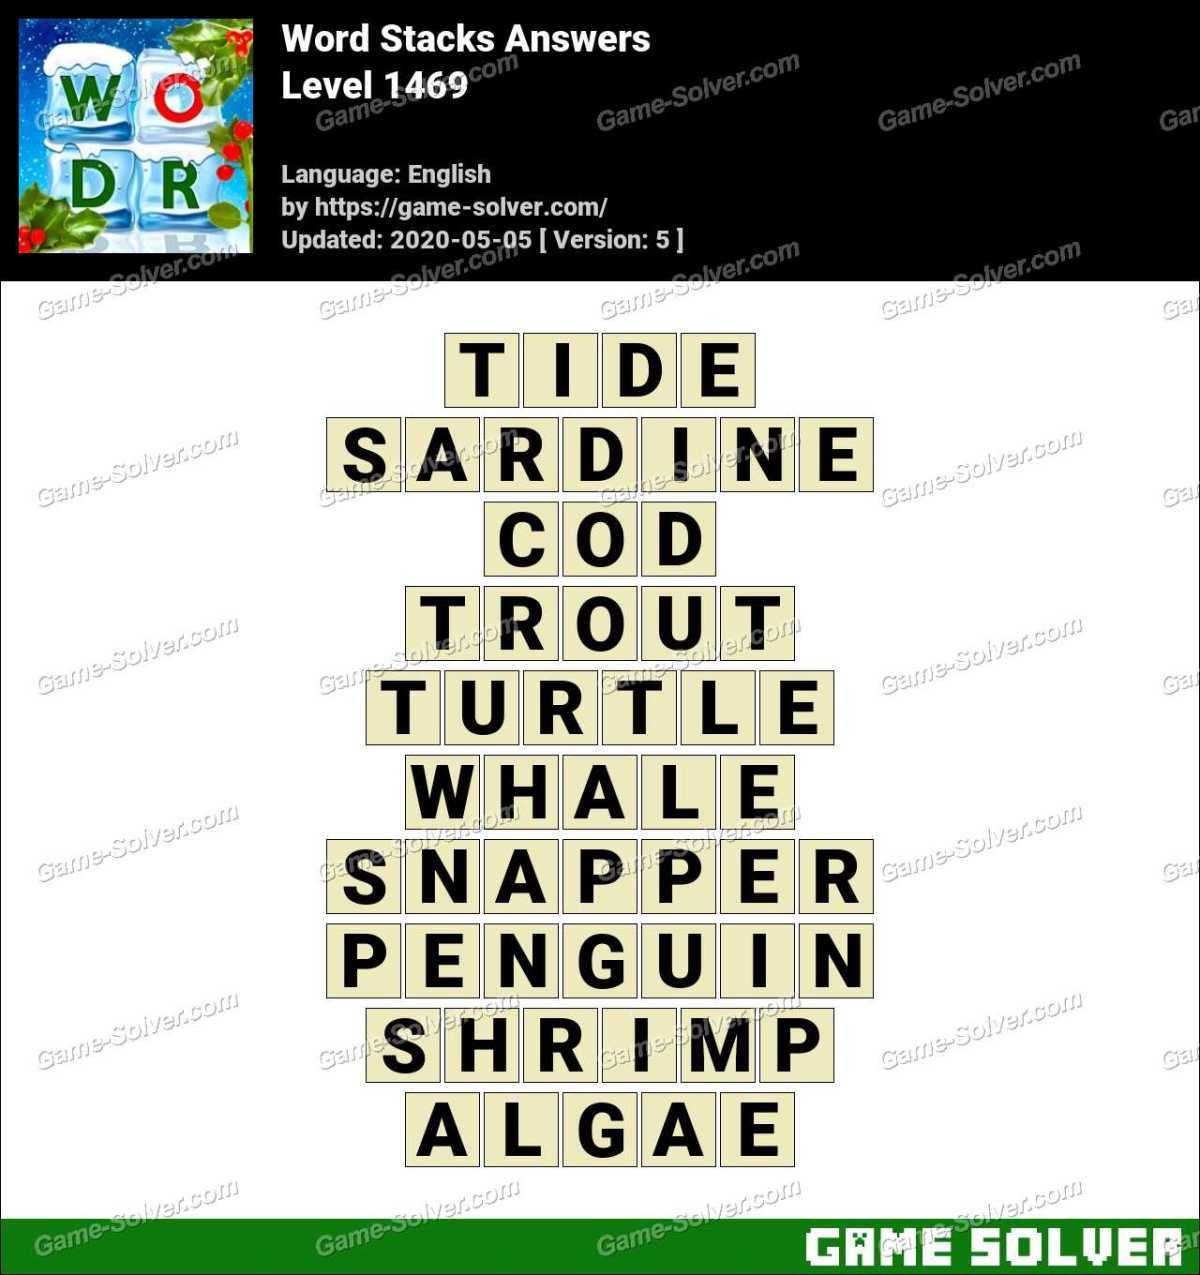 Word Stacks Level 1469 Answers